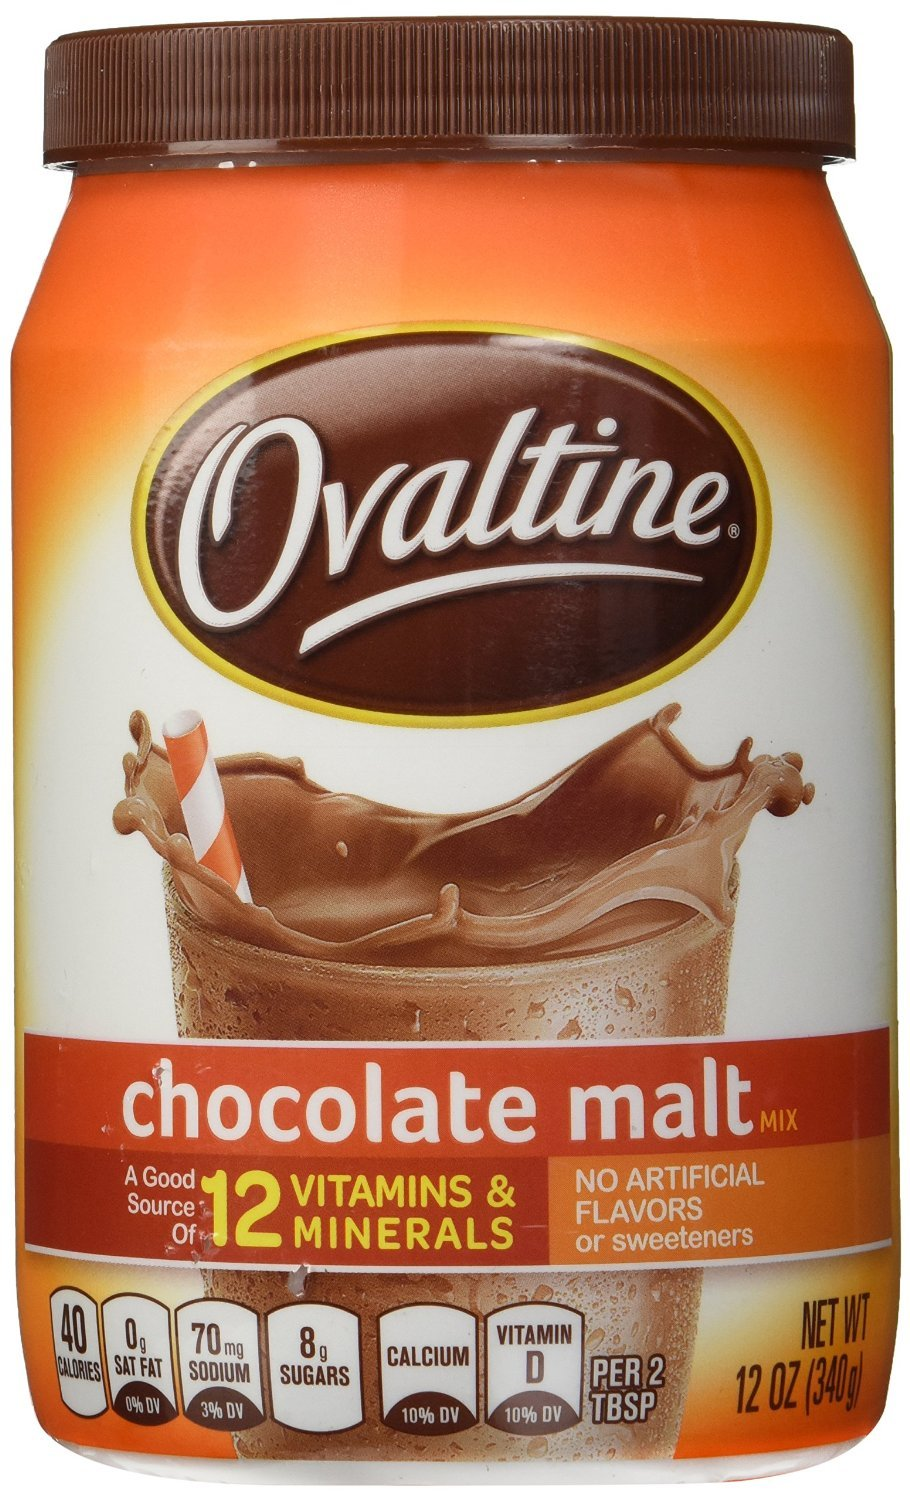 Ovaltine Chocolate Malt 12 oz (Pack of 3)